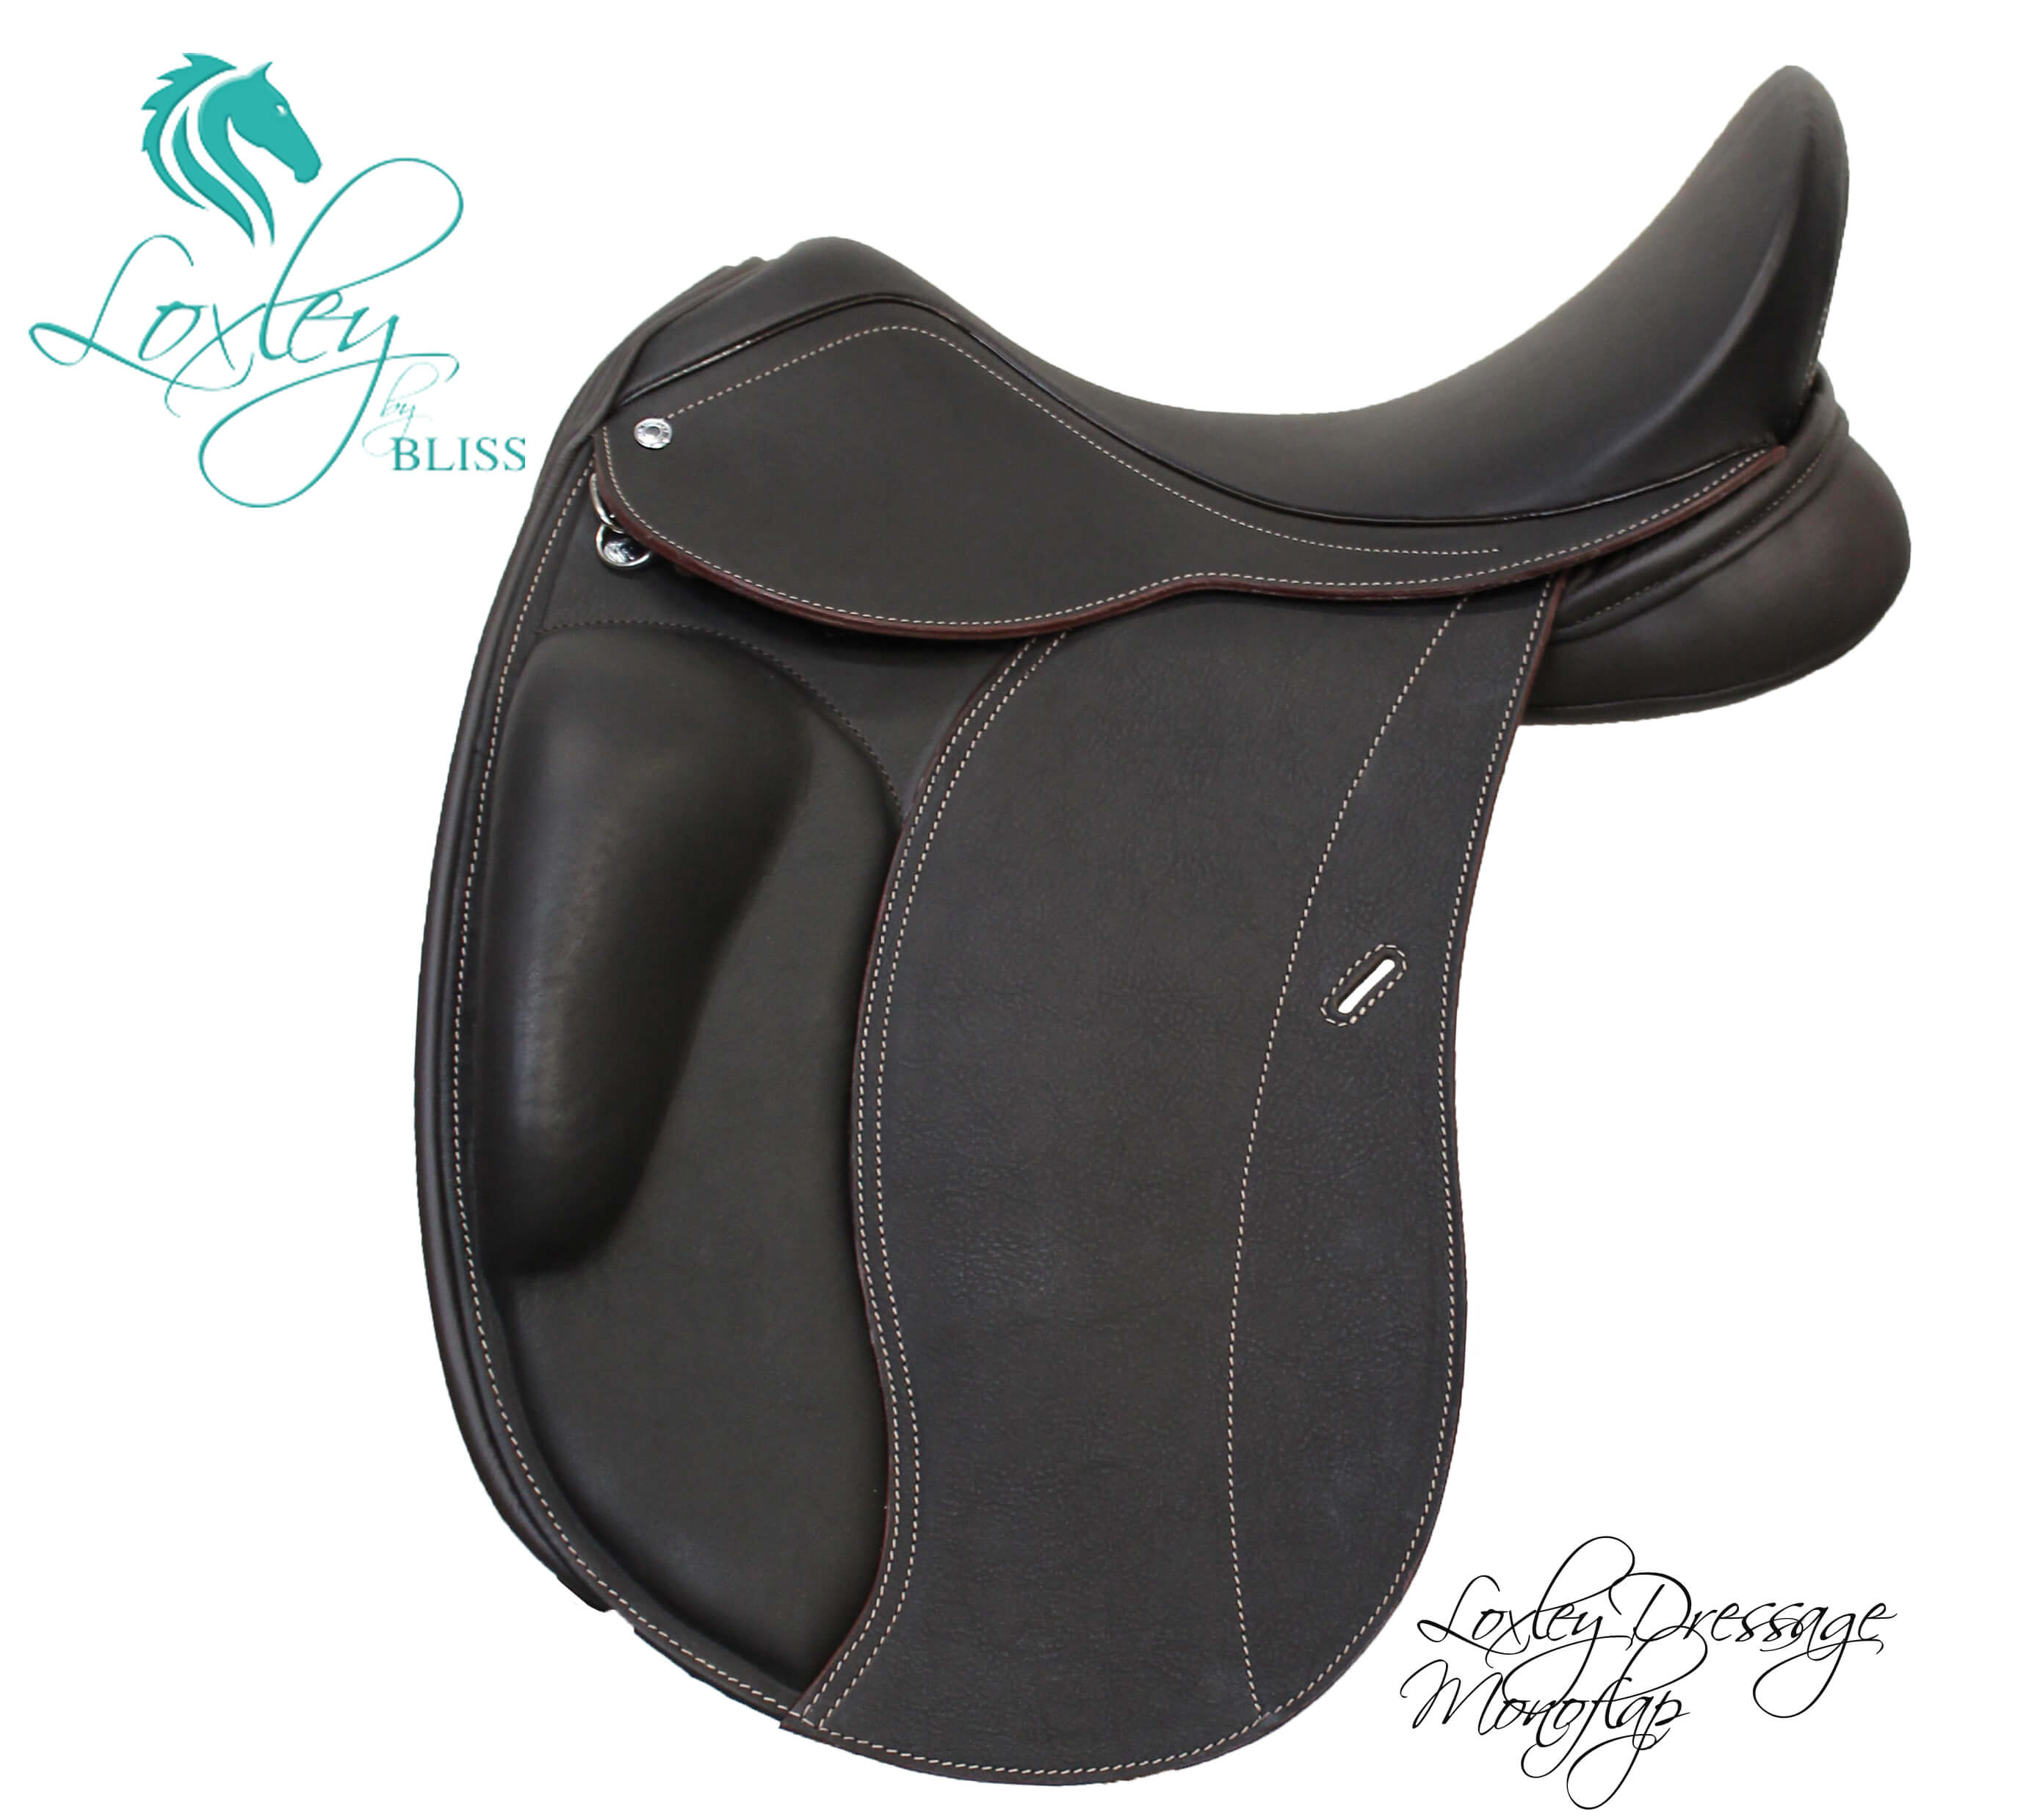 10 Loxley dressage mono side - Br Dr mono quilt & badge Loxley Saddle Image Template